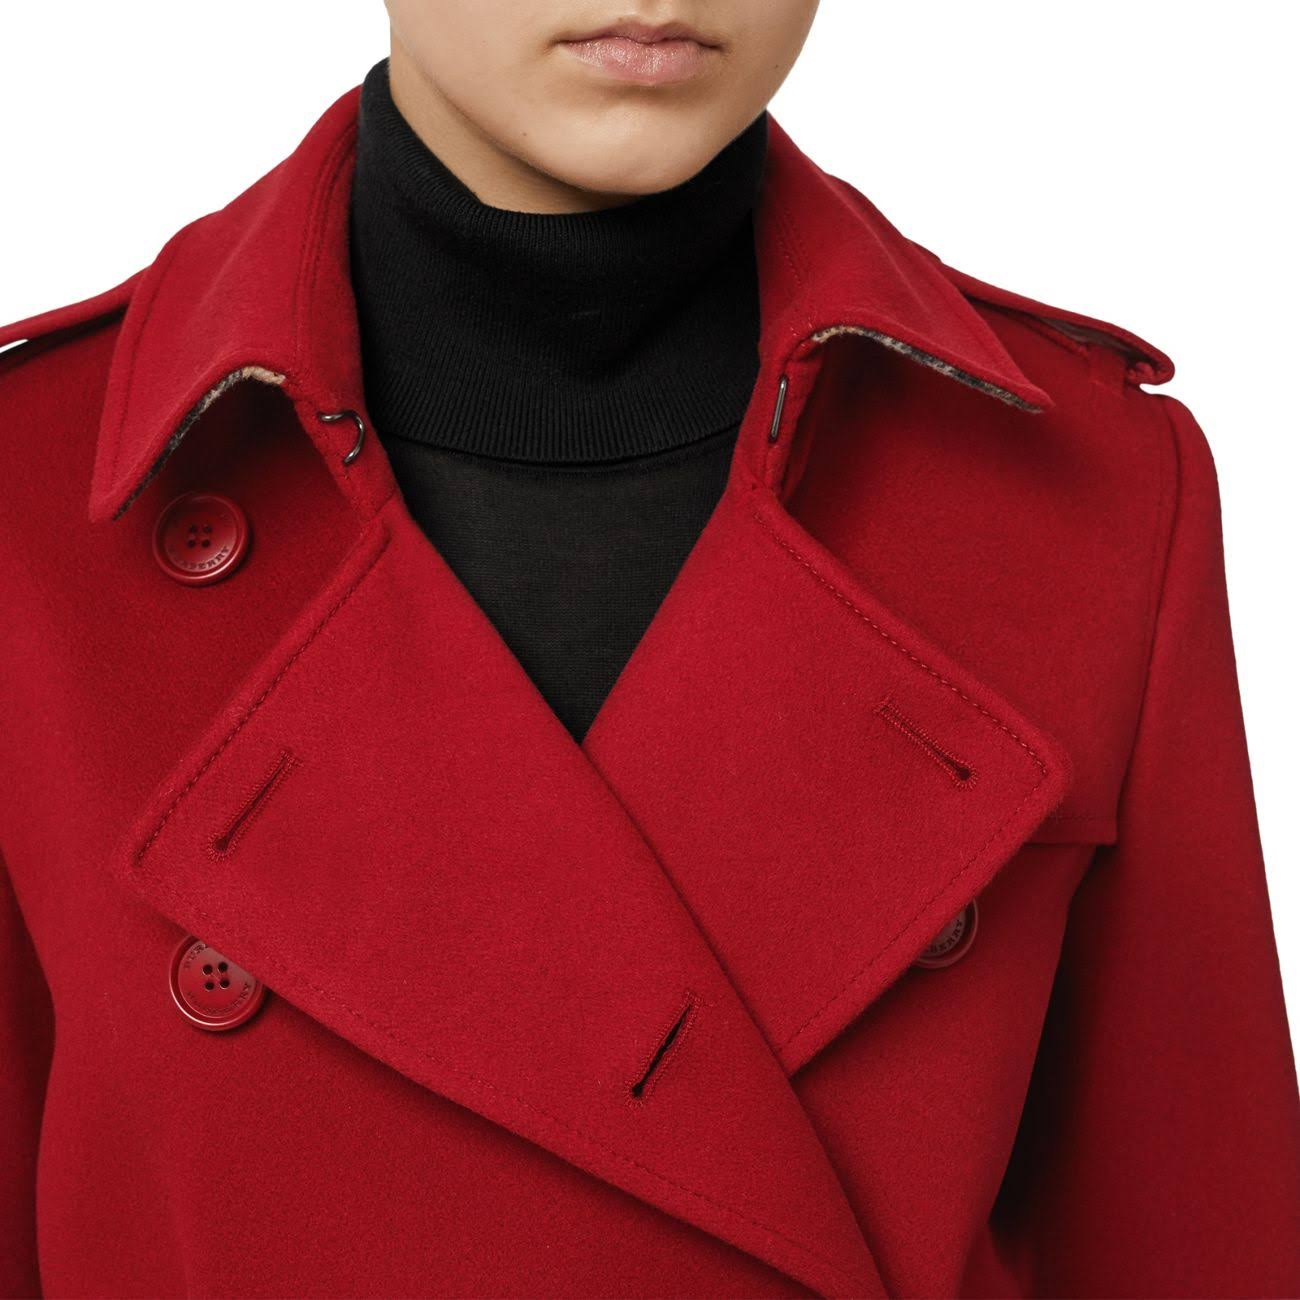 Burberry Coat Trench Cashmere Rojo 00 Tamaño xr6604qwU8